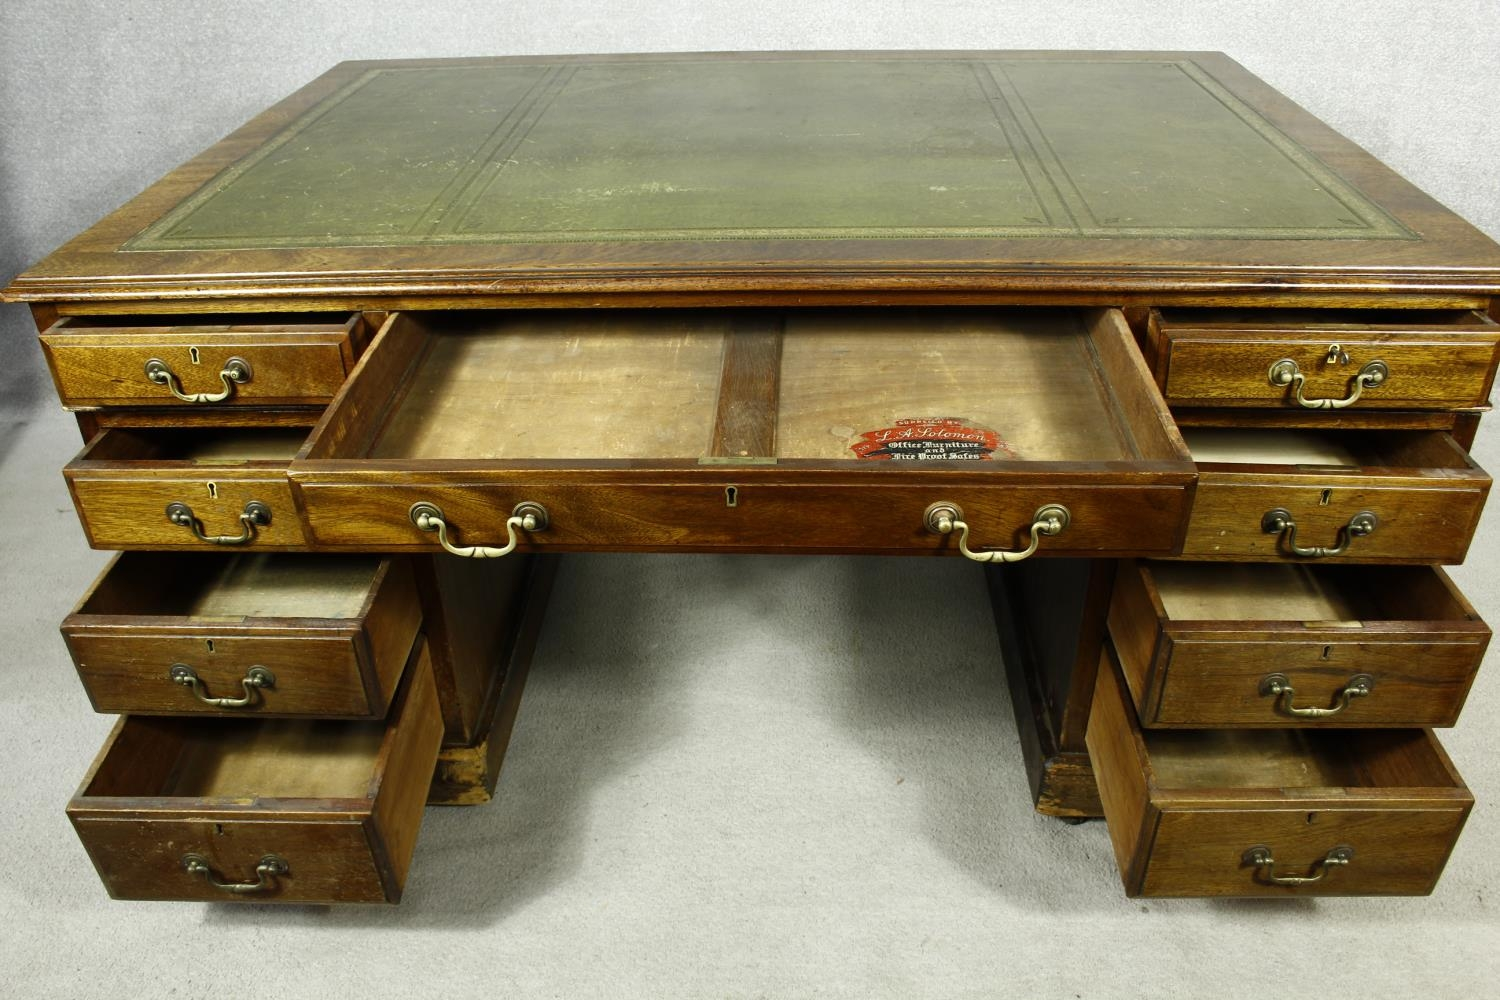 A C.1900 mahogany three section partner's pedestal desk with inset tooled leather top above an - Image 2 of 20